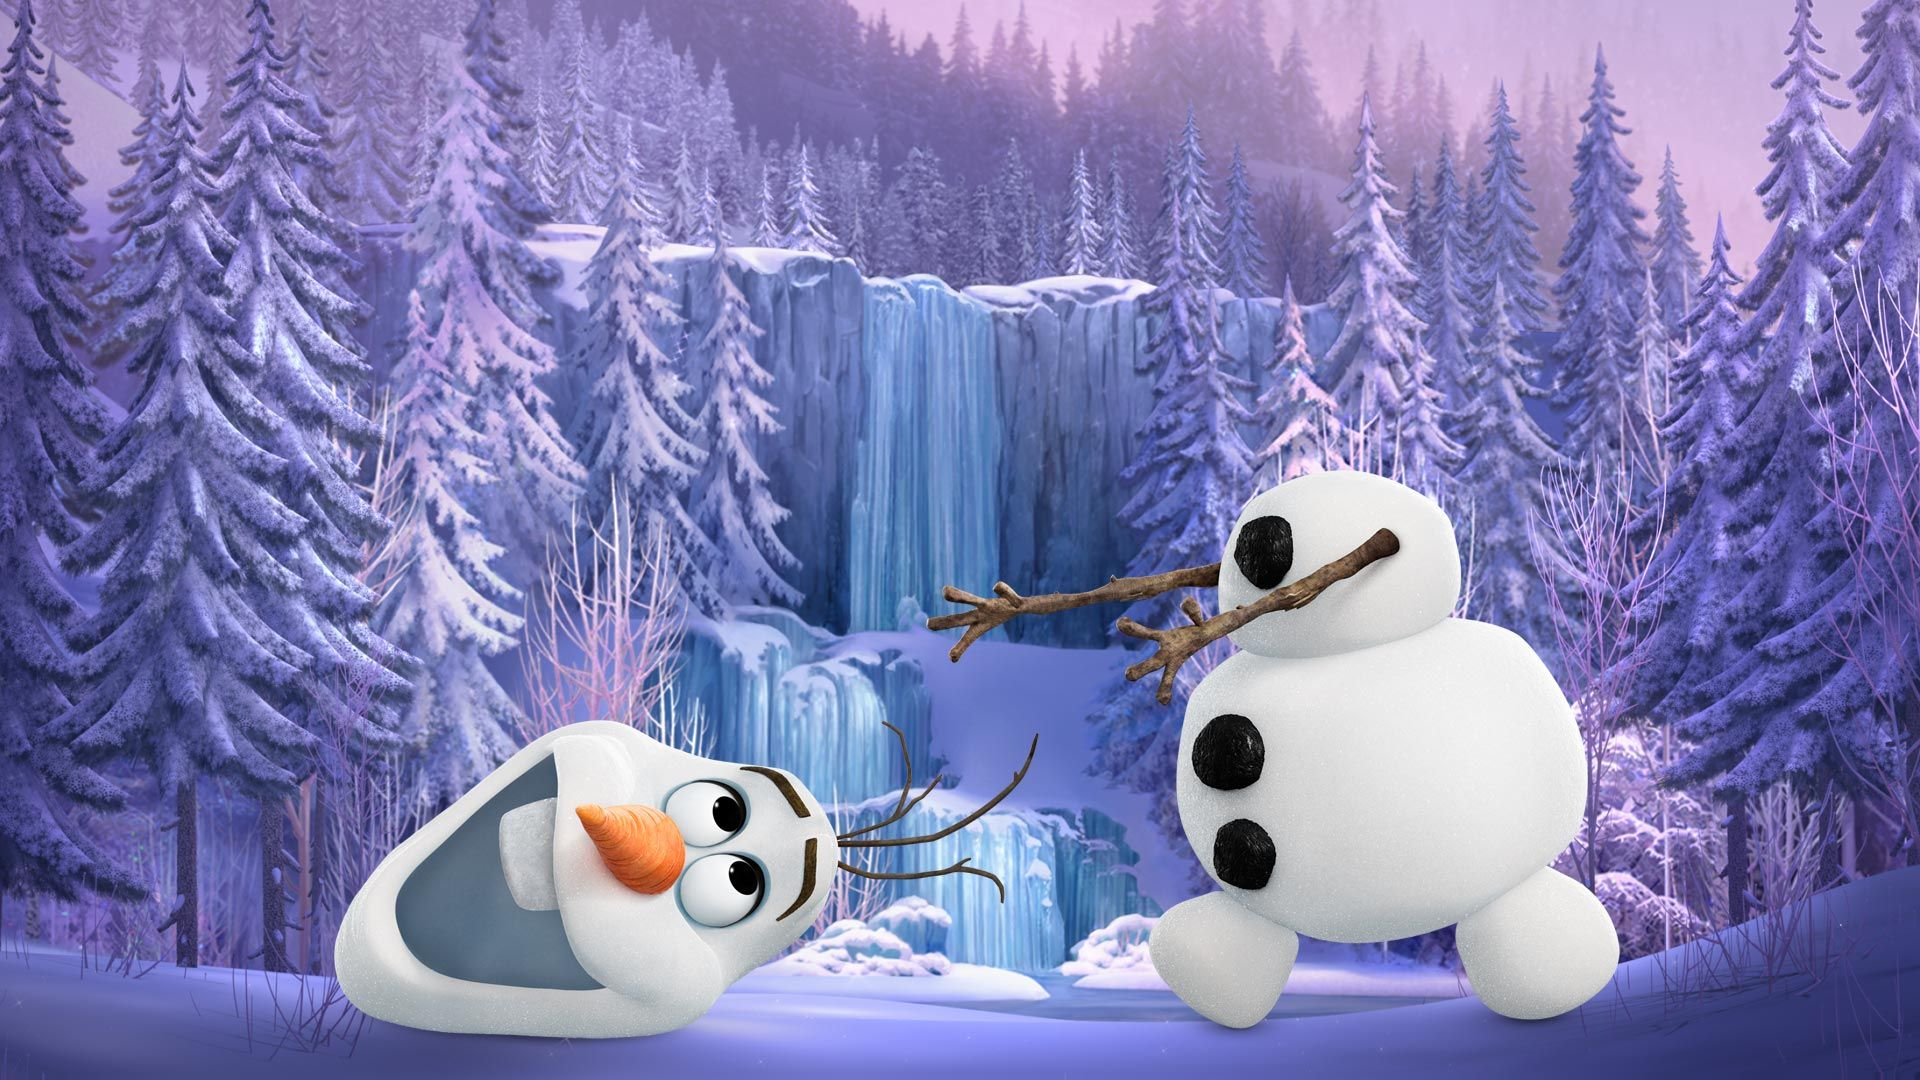 Olaf Wallpaper Picture Image 1920x1080